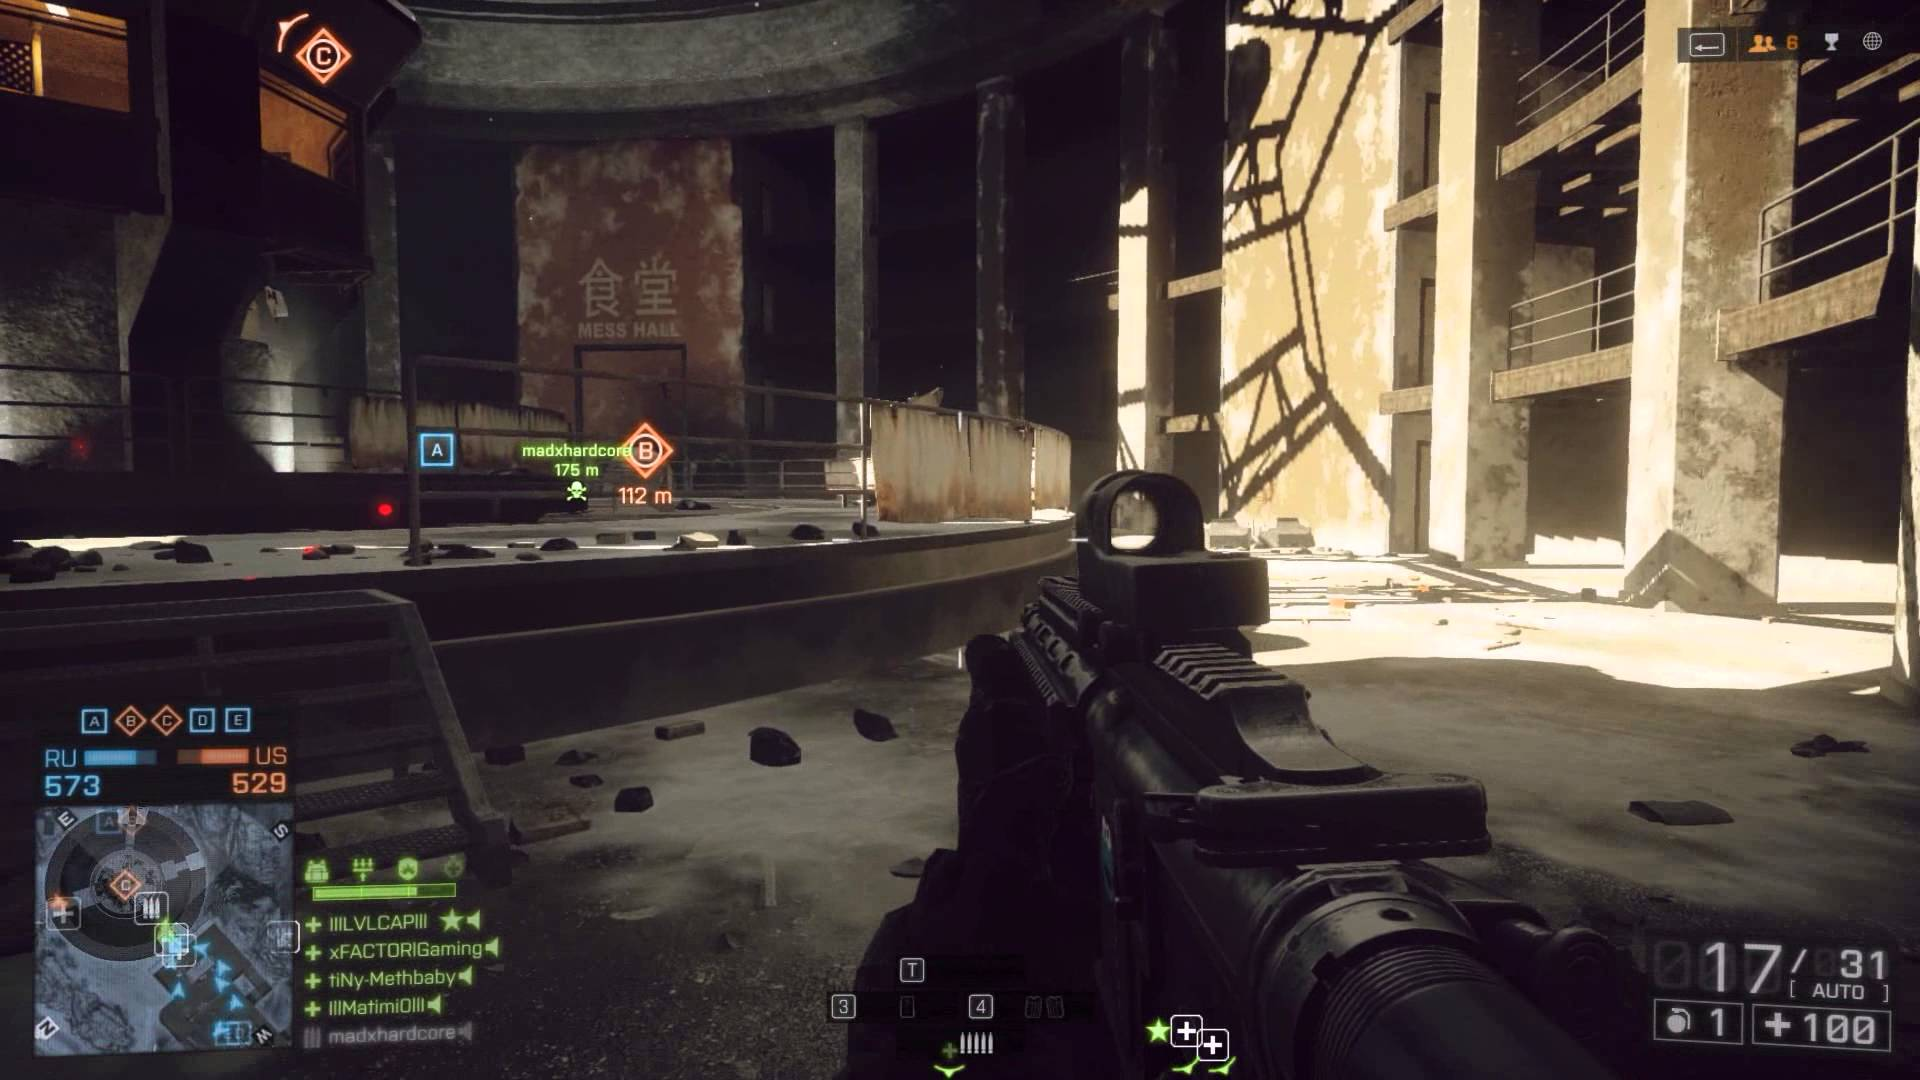 Battlefield 4 Assault class strategy guide